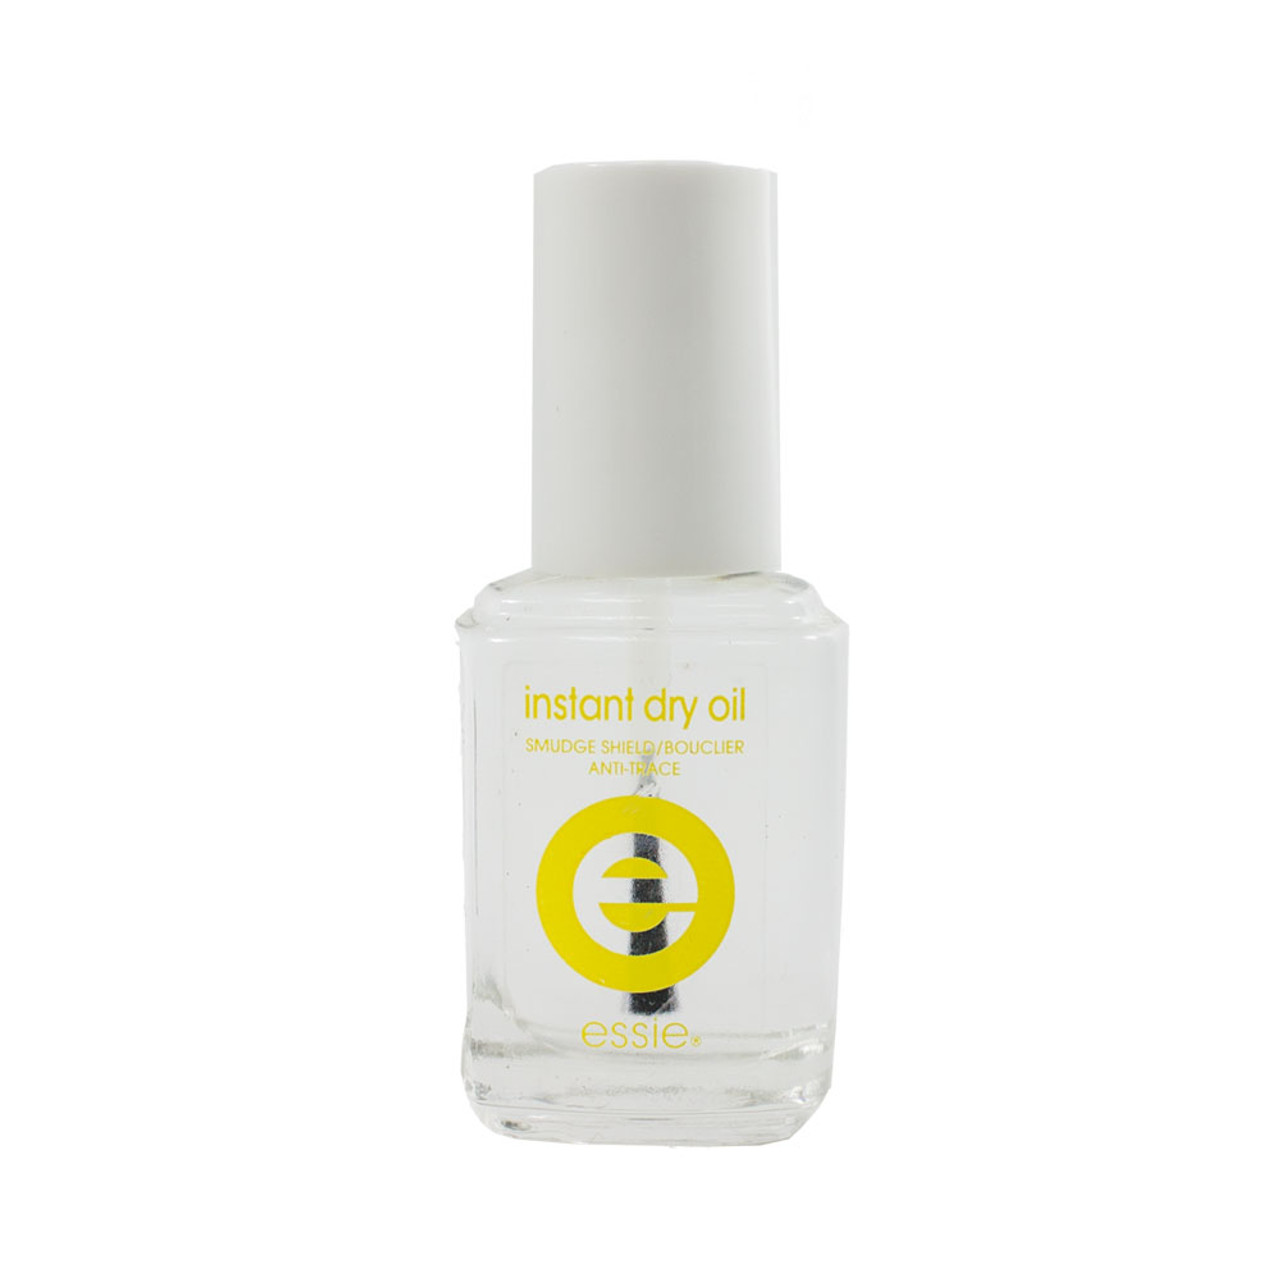 Essie Instant Dry Oil Smudge Shield Protect + Shine Solution ...